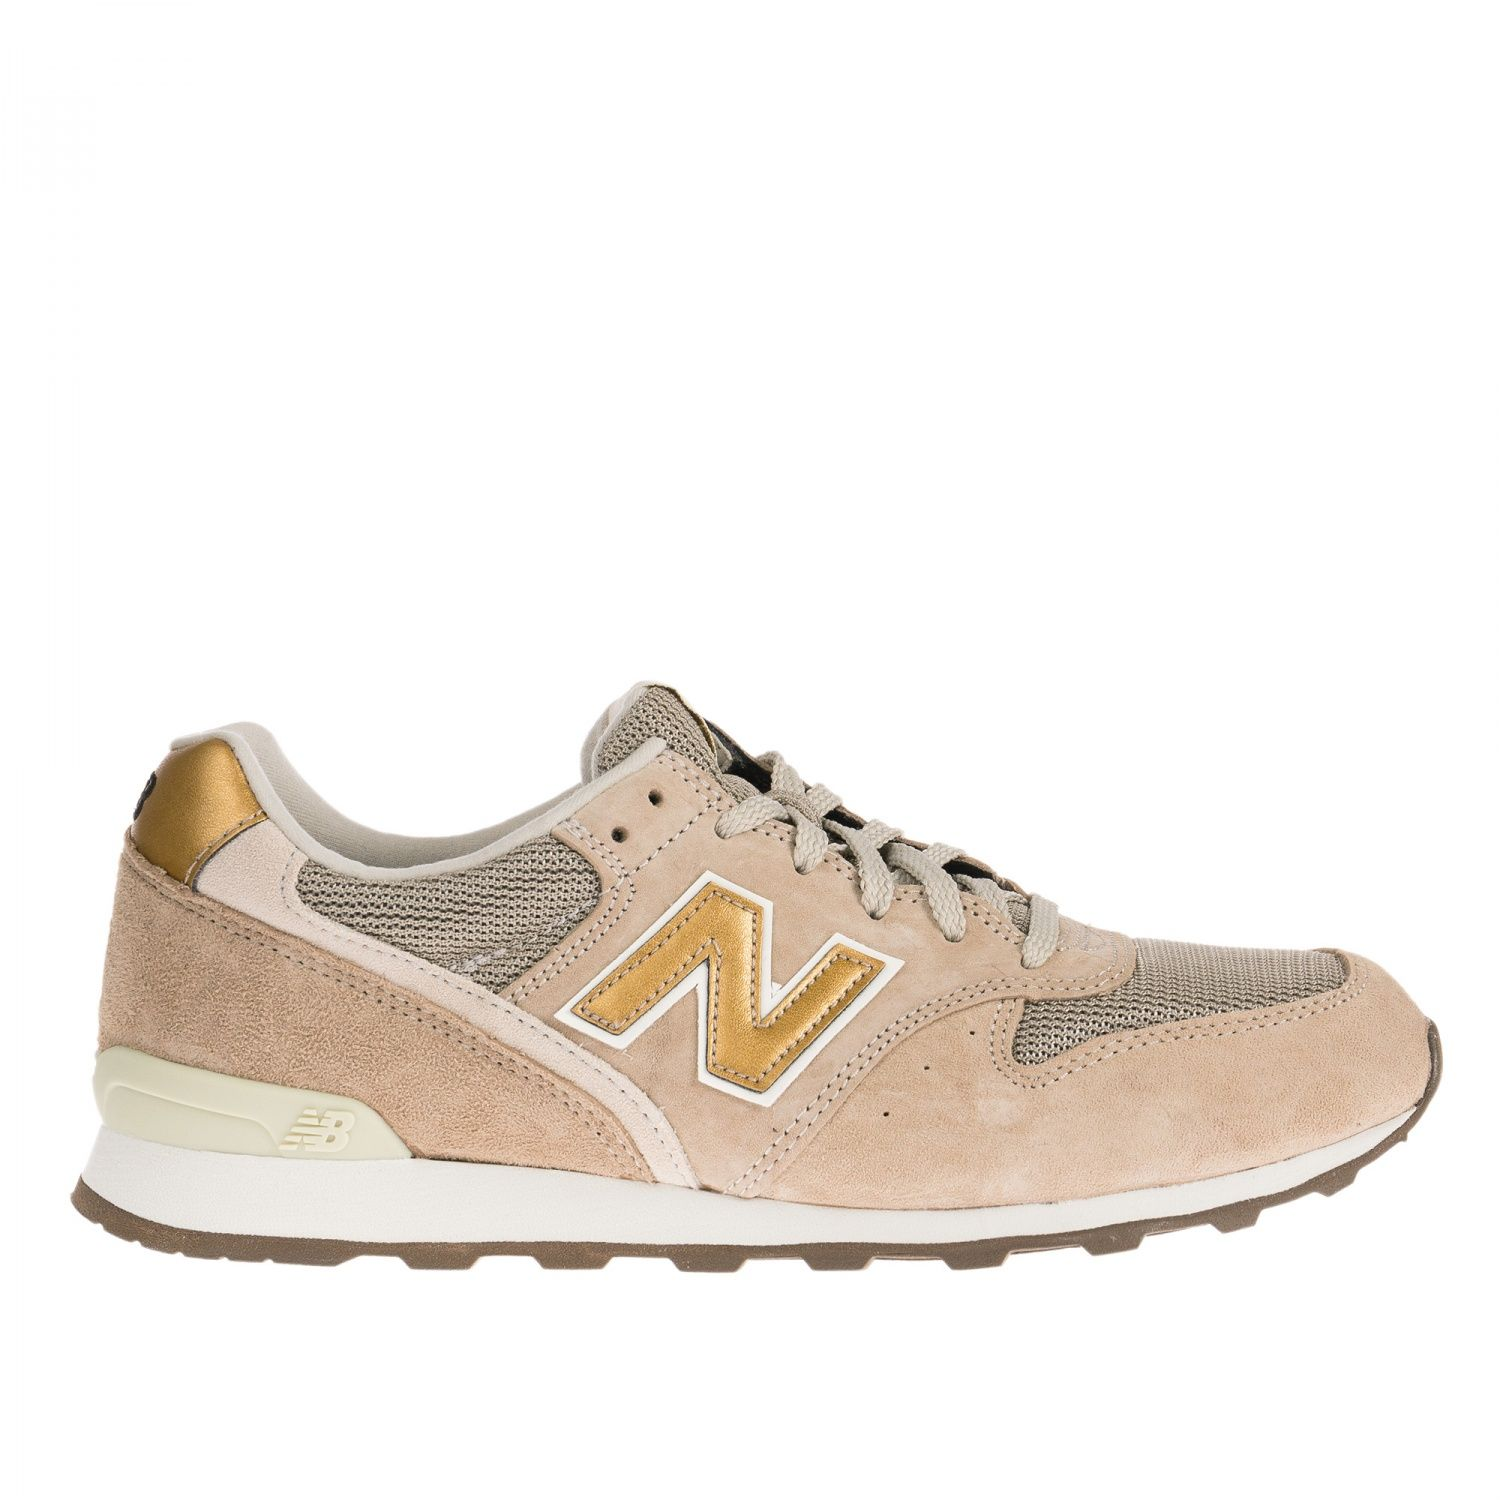 official photos 090d6 2937e new balance 996 classic marine